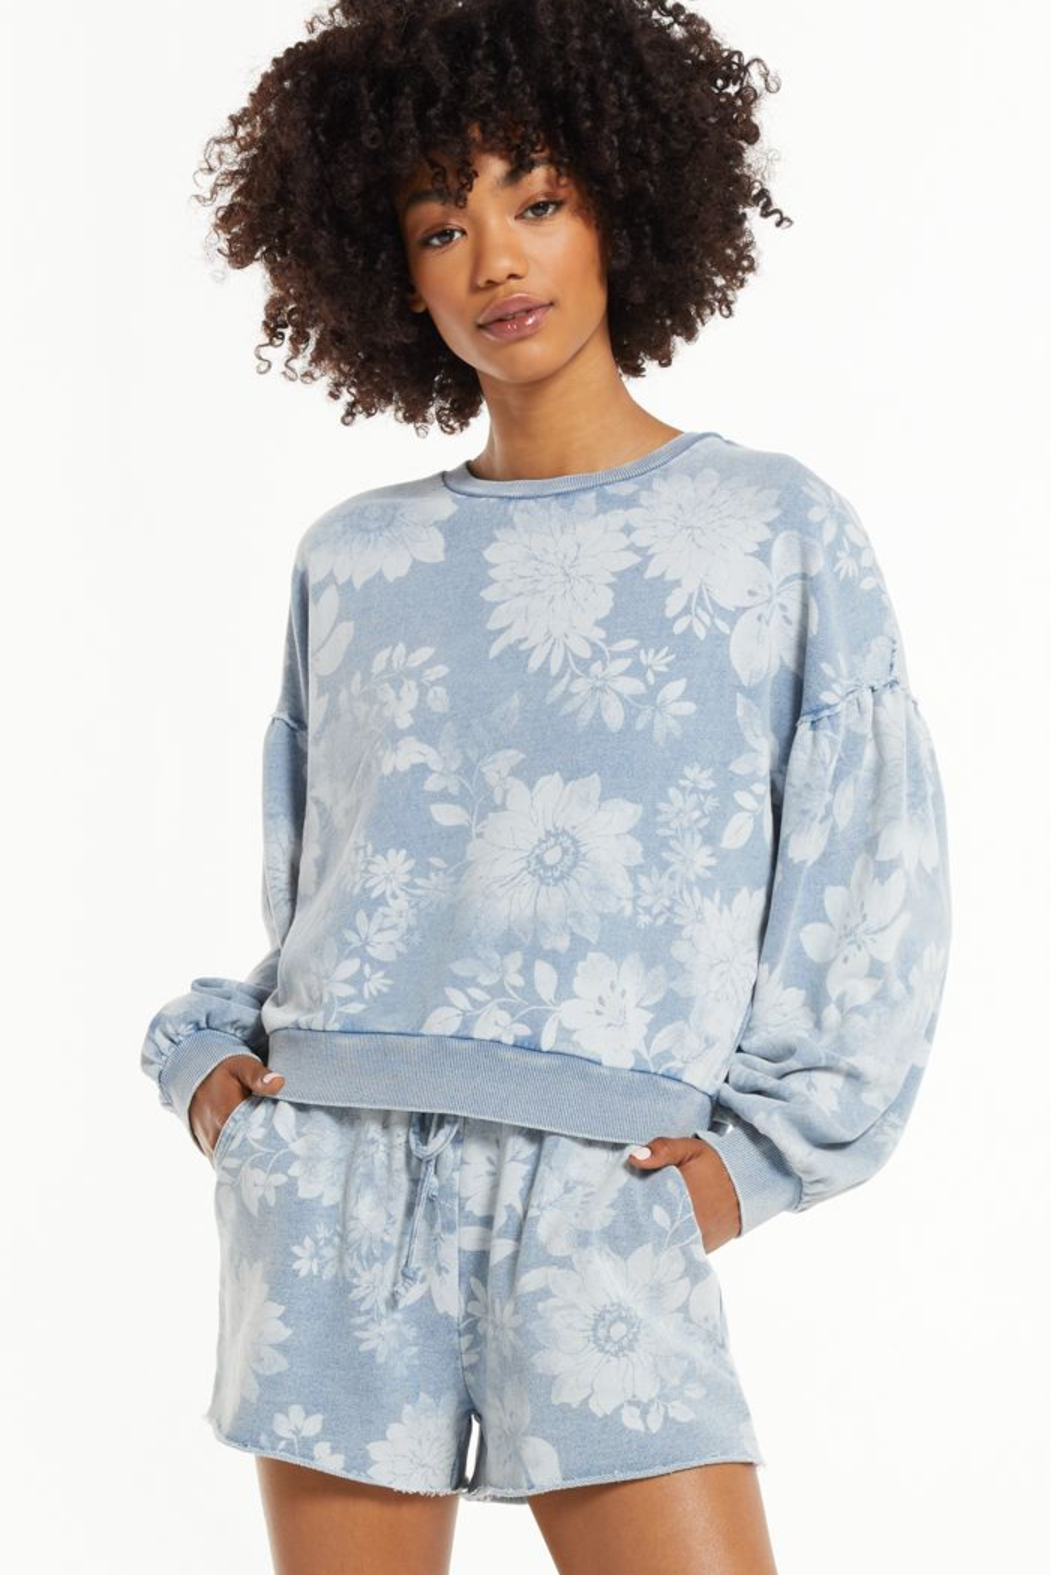 z supply Claire Floral Sweatshirt - Main Image